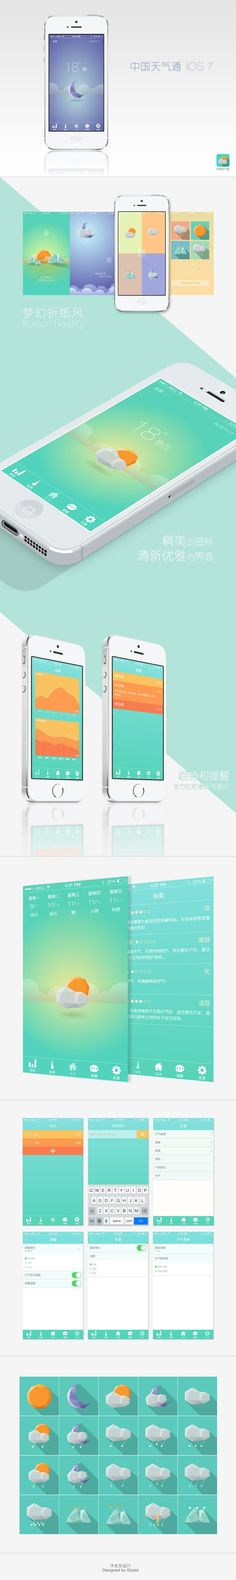 Pin de YoungChul Kim en UI Design | Pinterest